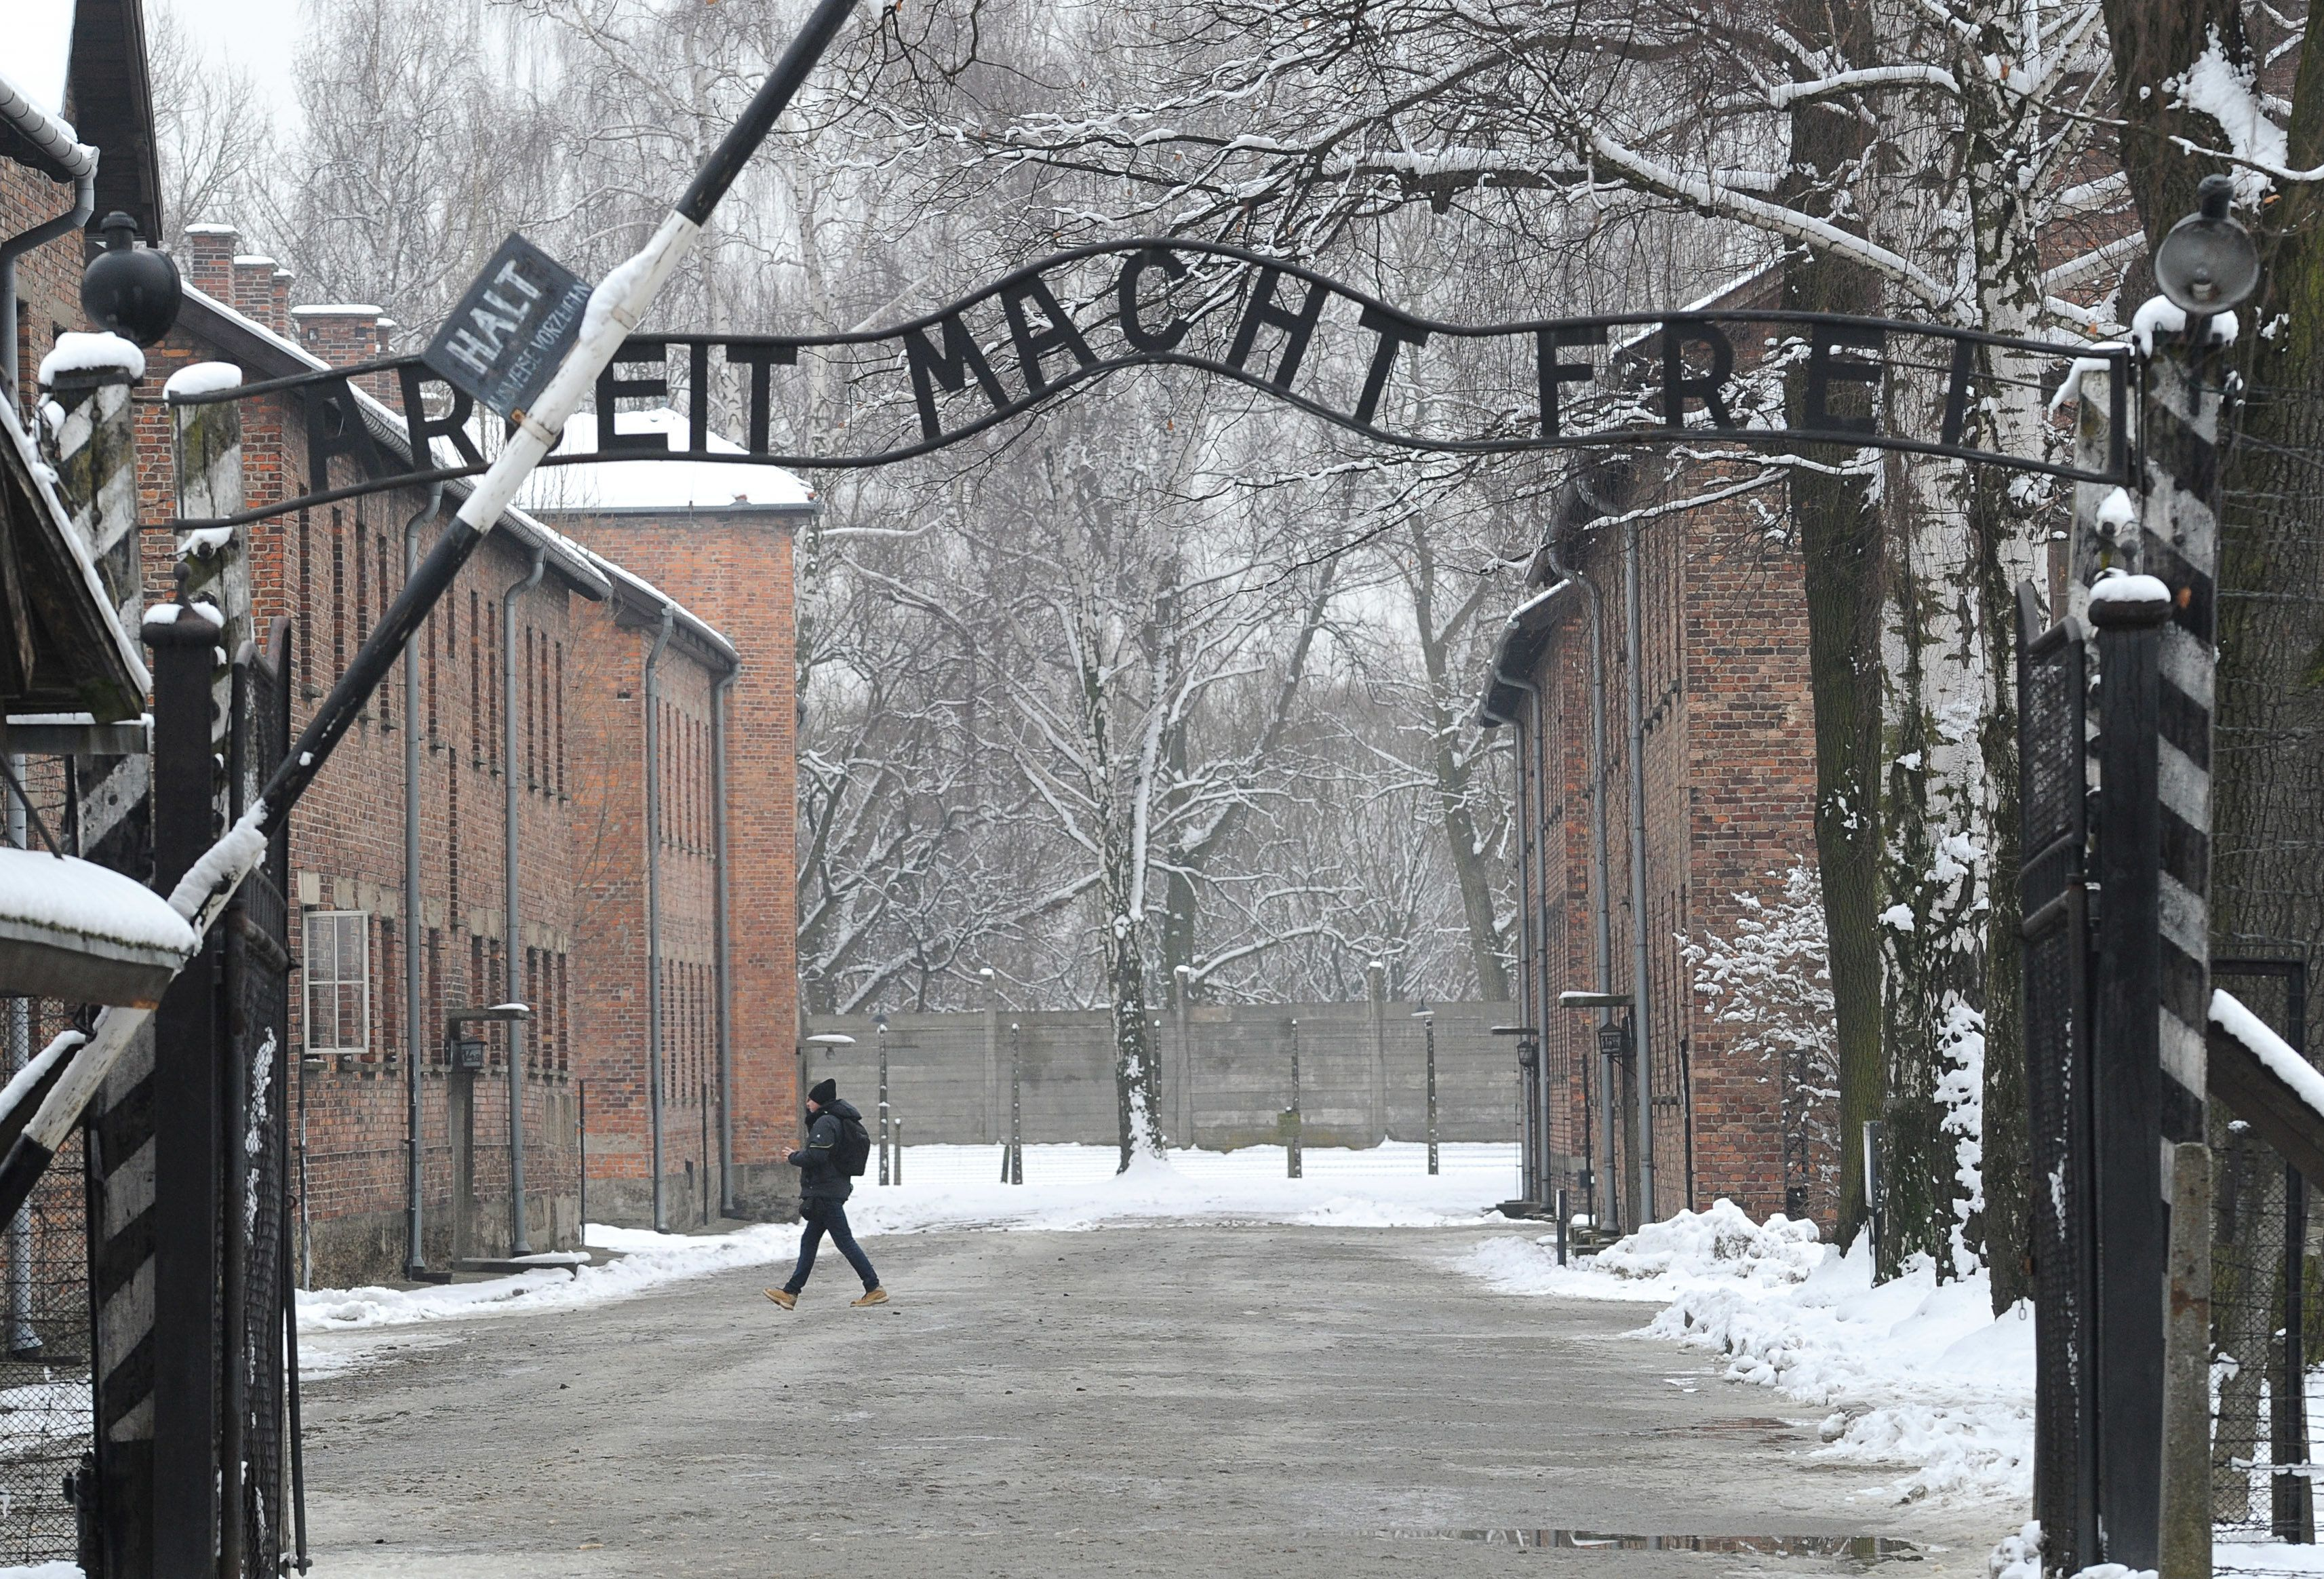 """The entrance to the former Nazi Death Camp Auschwitz with the """"Arbeit Macht Frei"""" (Work Sets you Free) writing above,  in Oswiecim, Poland, Monday, Jan. 26, 2015. (AP Photo/Alik Keplicz)"""